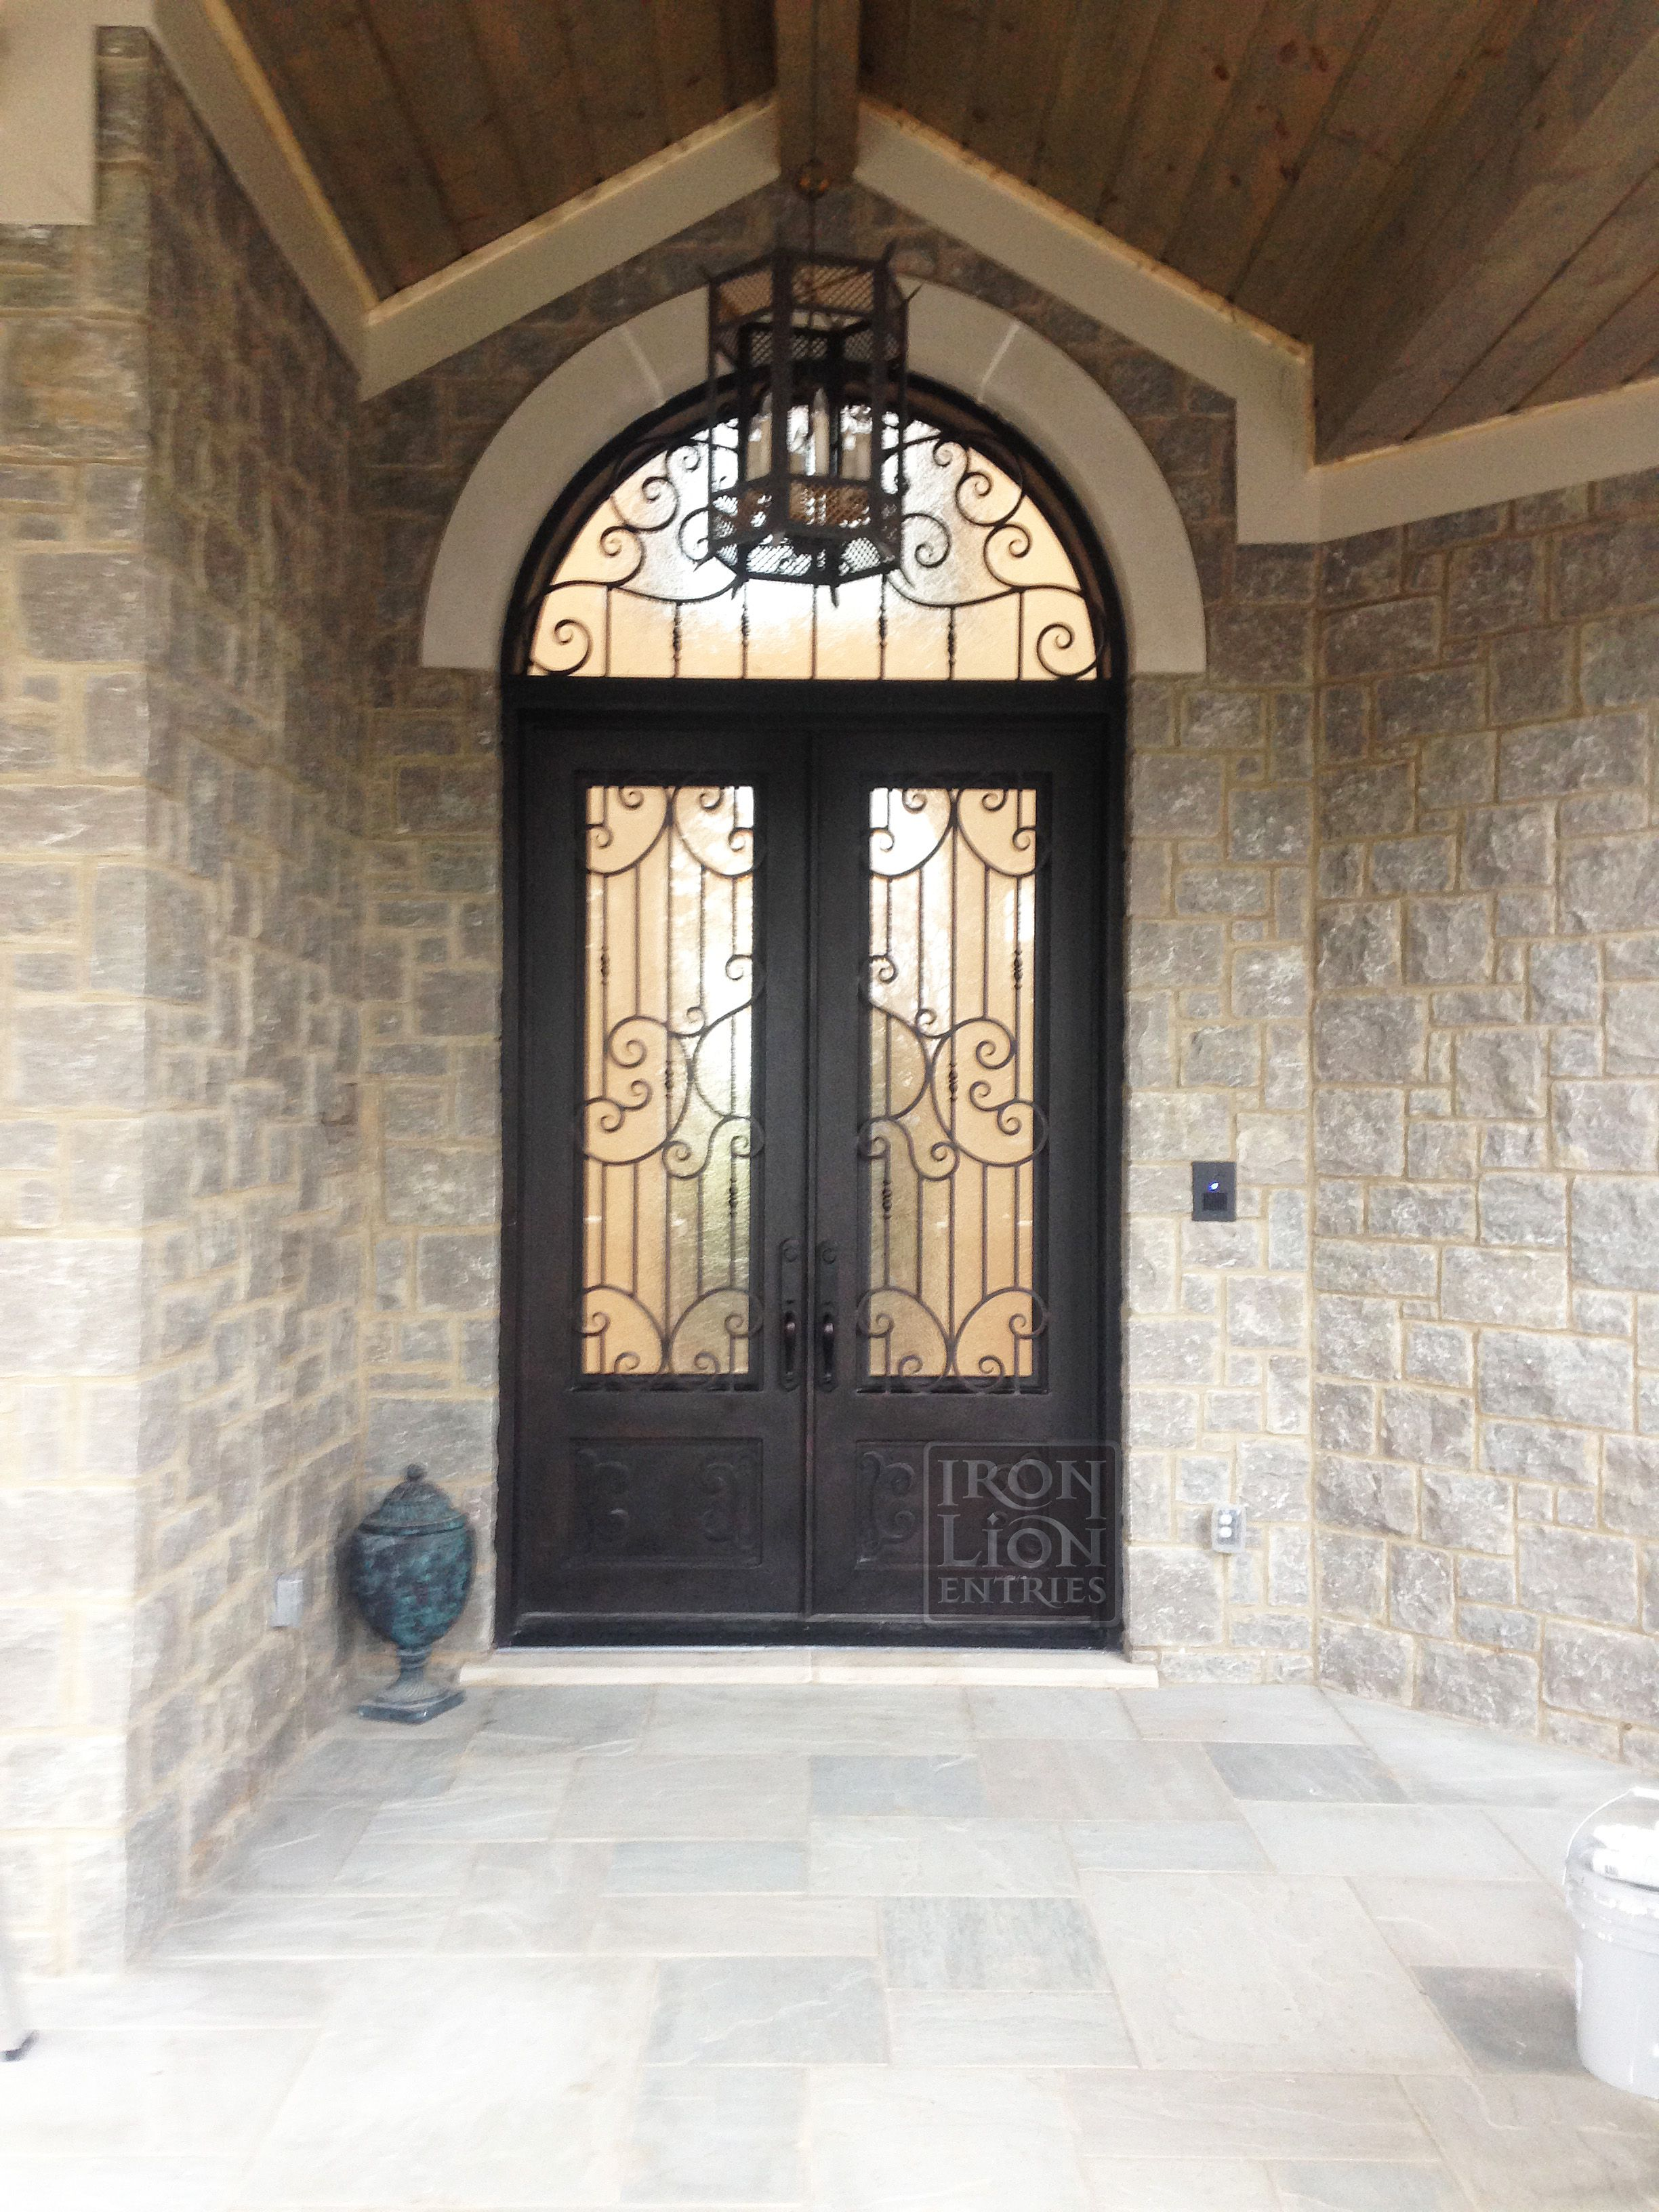 Wrought Iron Entry Door Ironentrydoor Iron Door Custom Iron Door